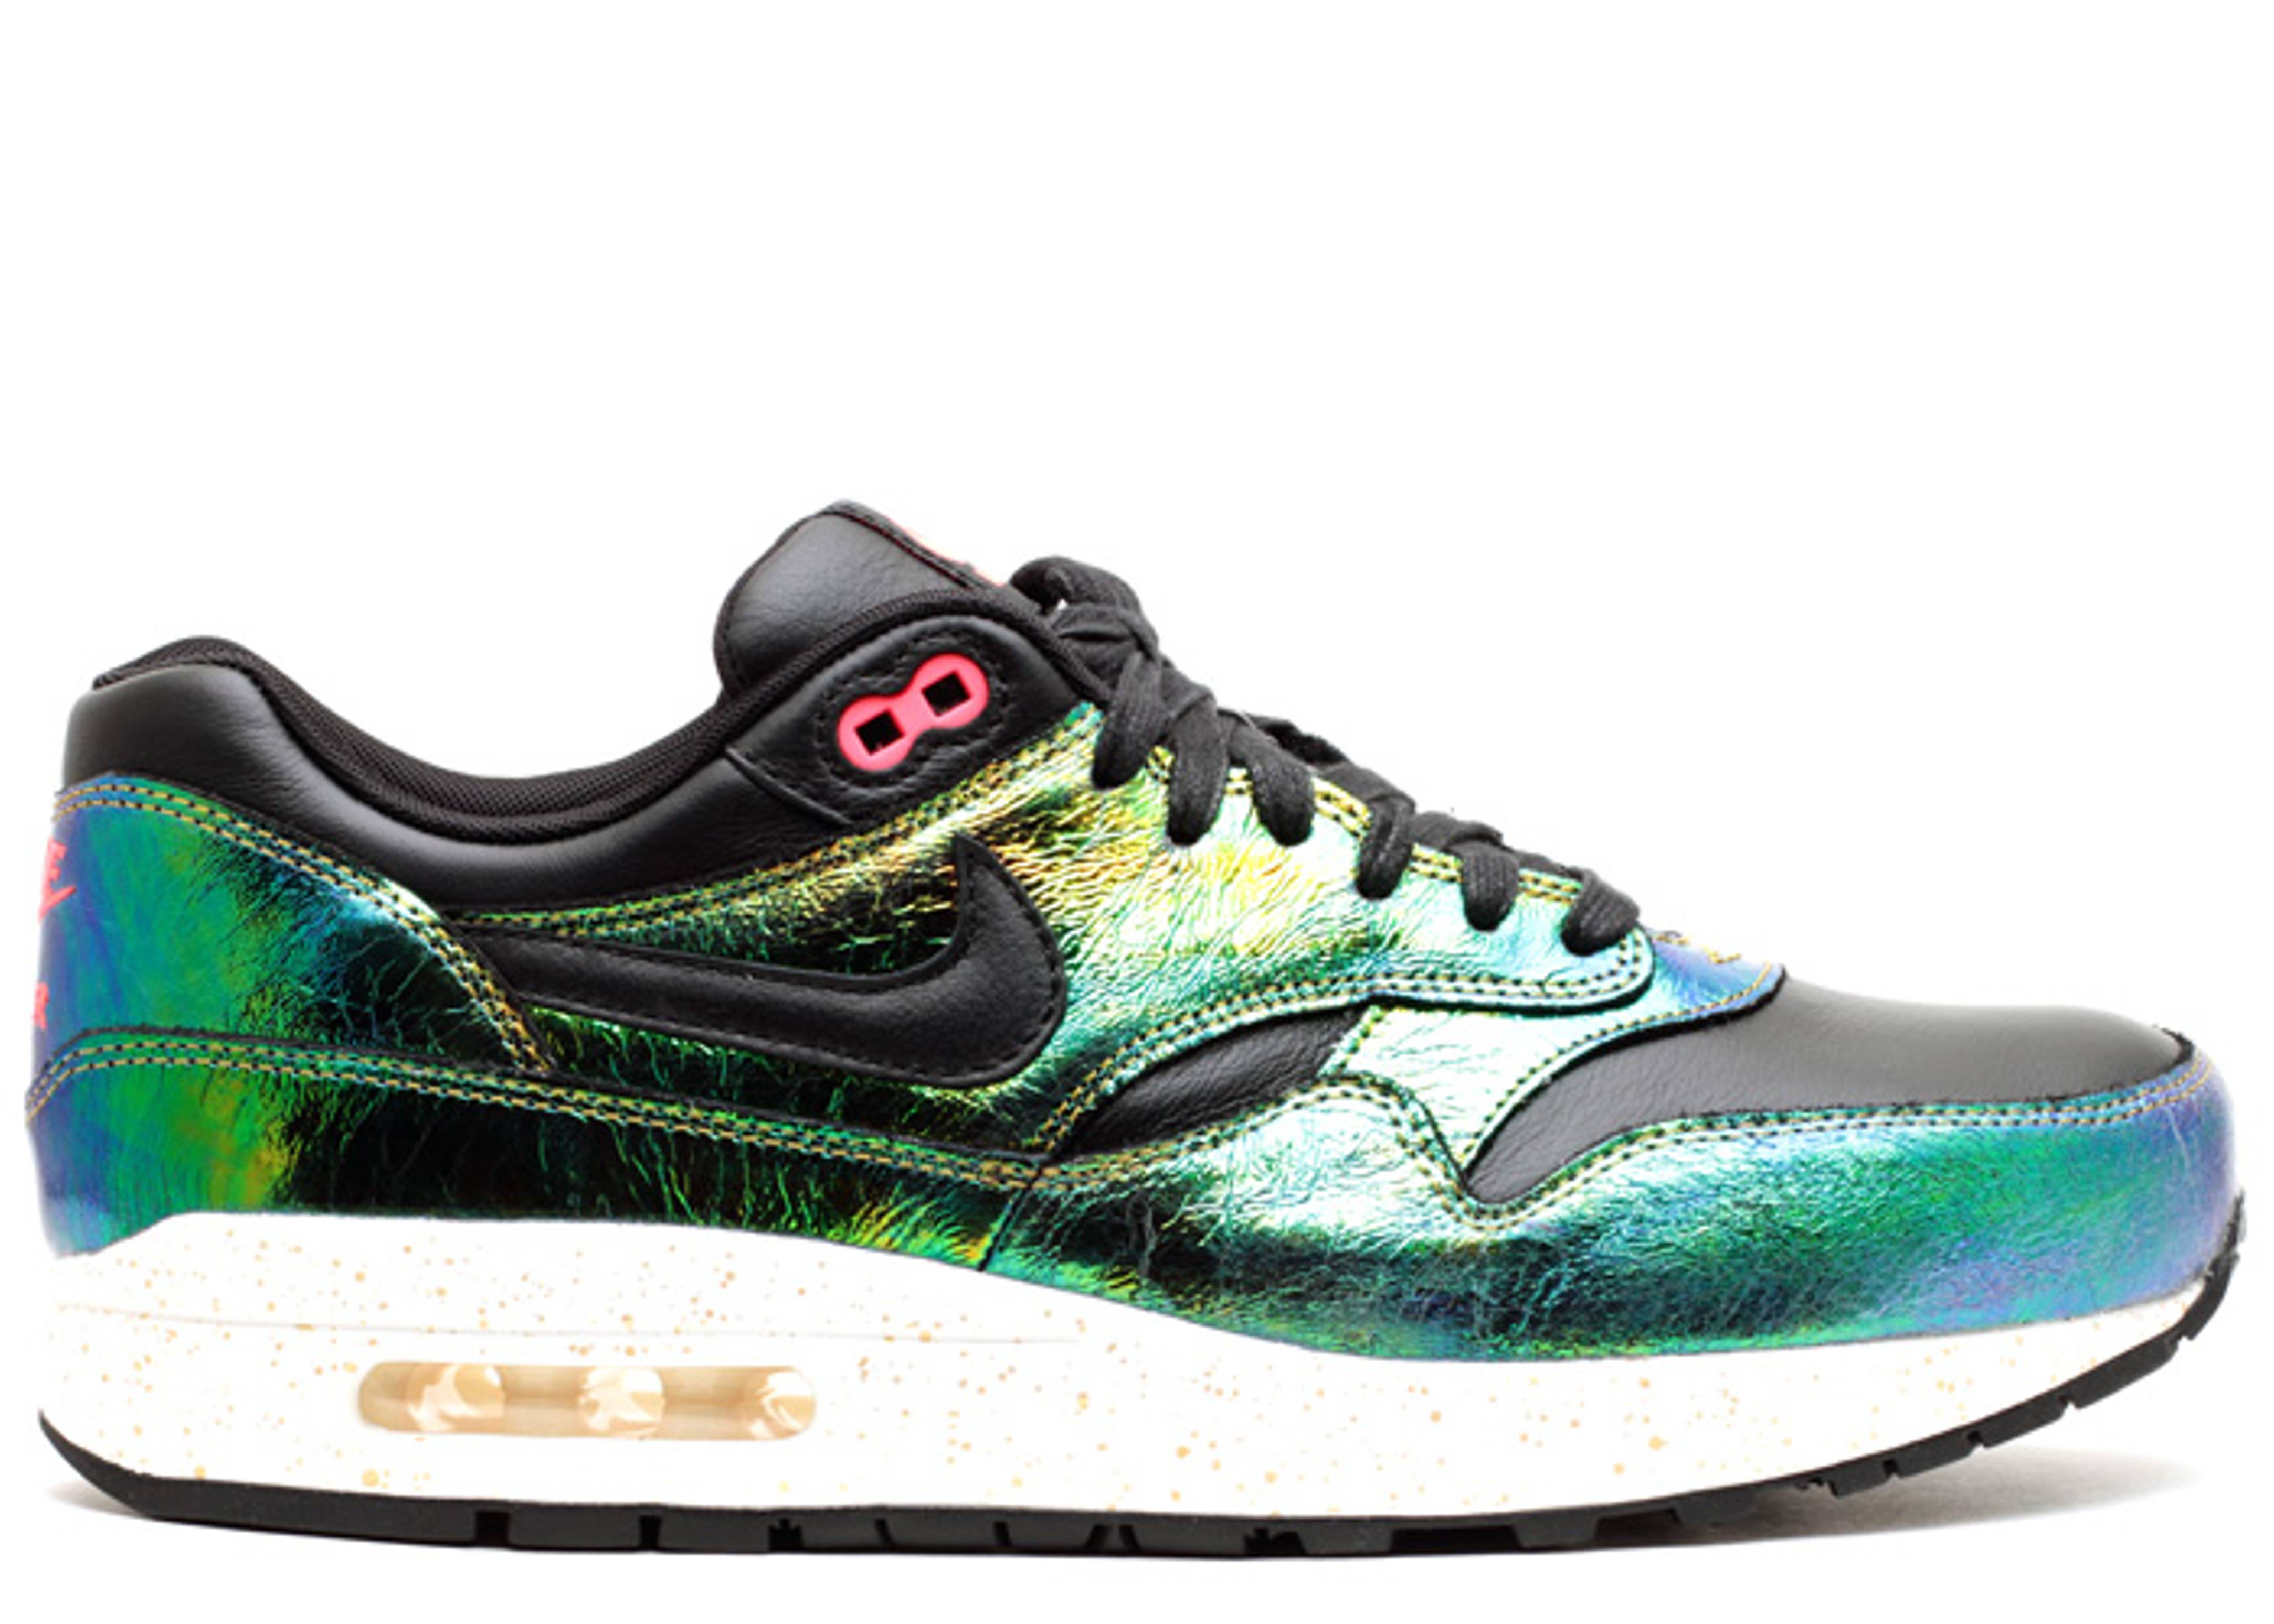 Men's Nike Air Max 1 SUP QS Bronze Trophy Pack Black Ivory Sneakers : D83x5914